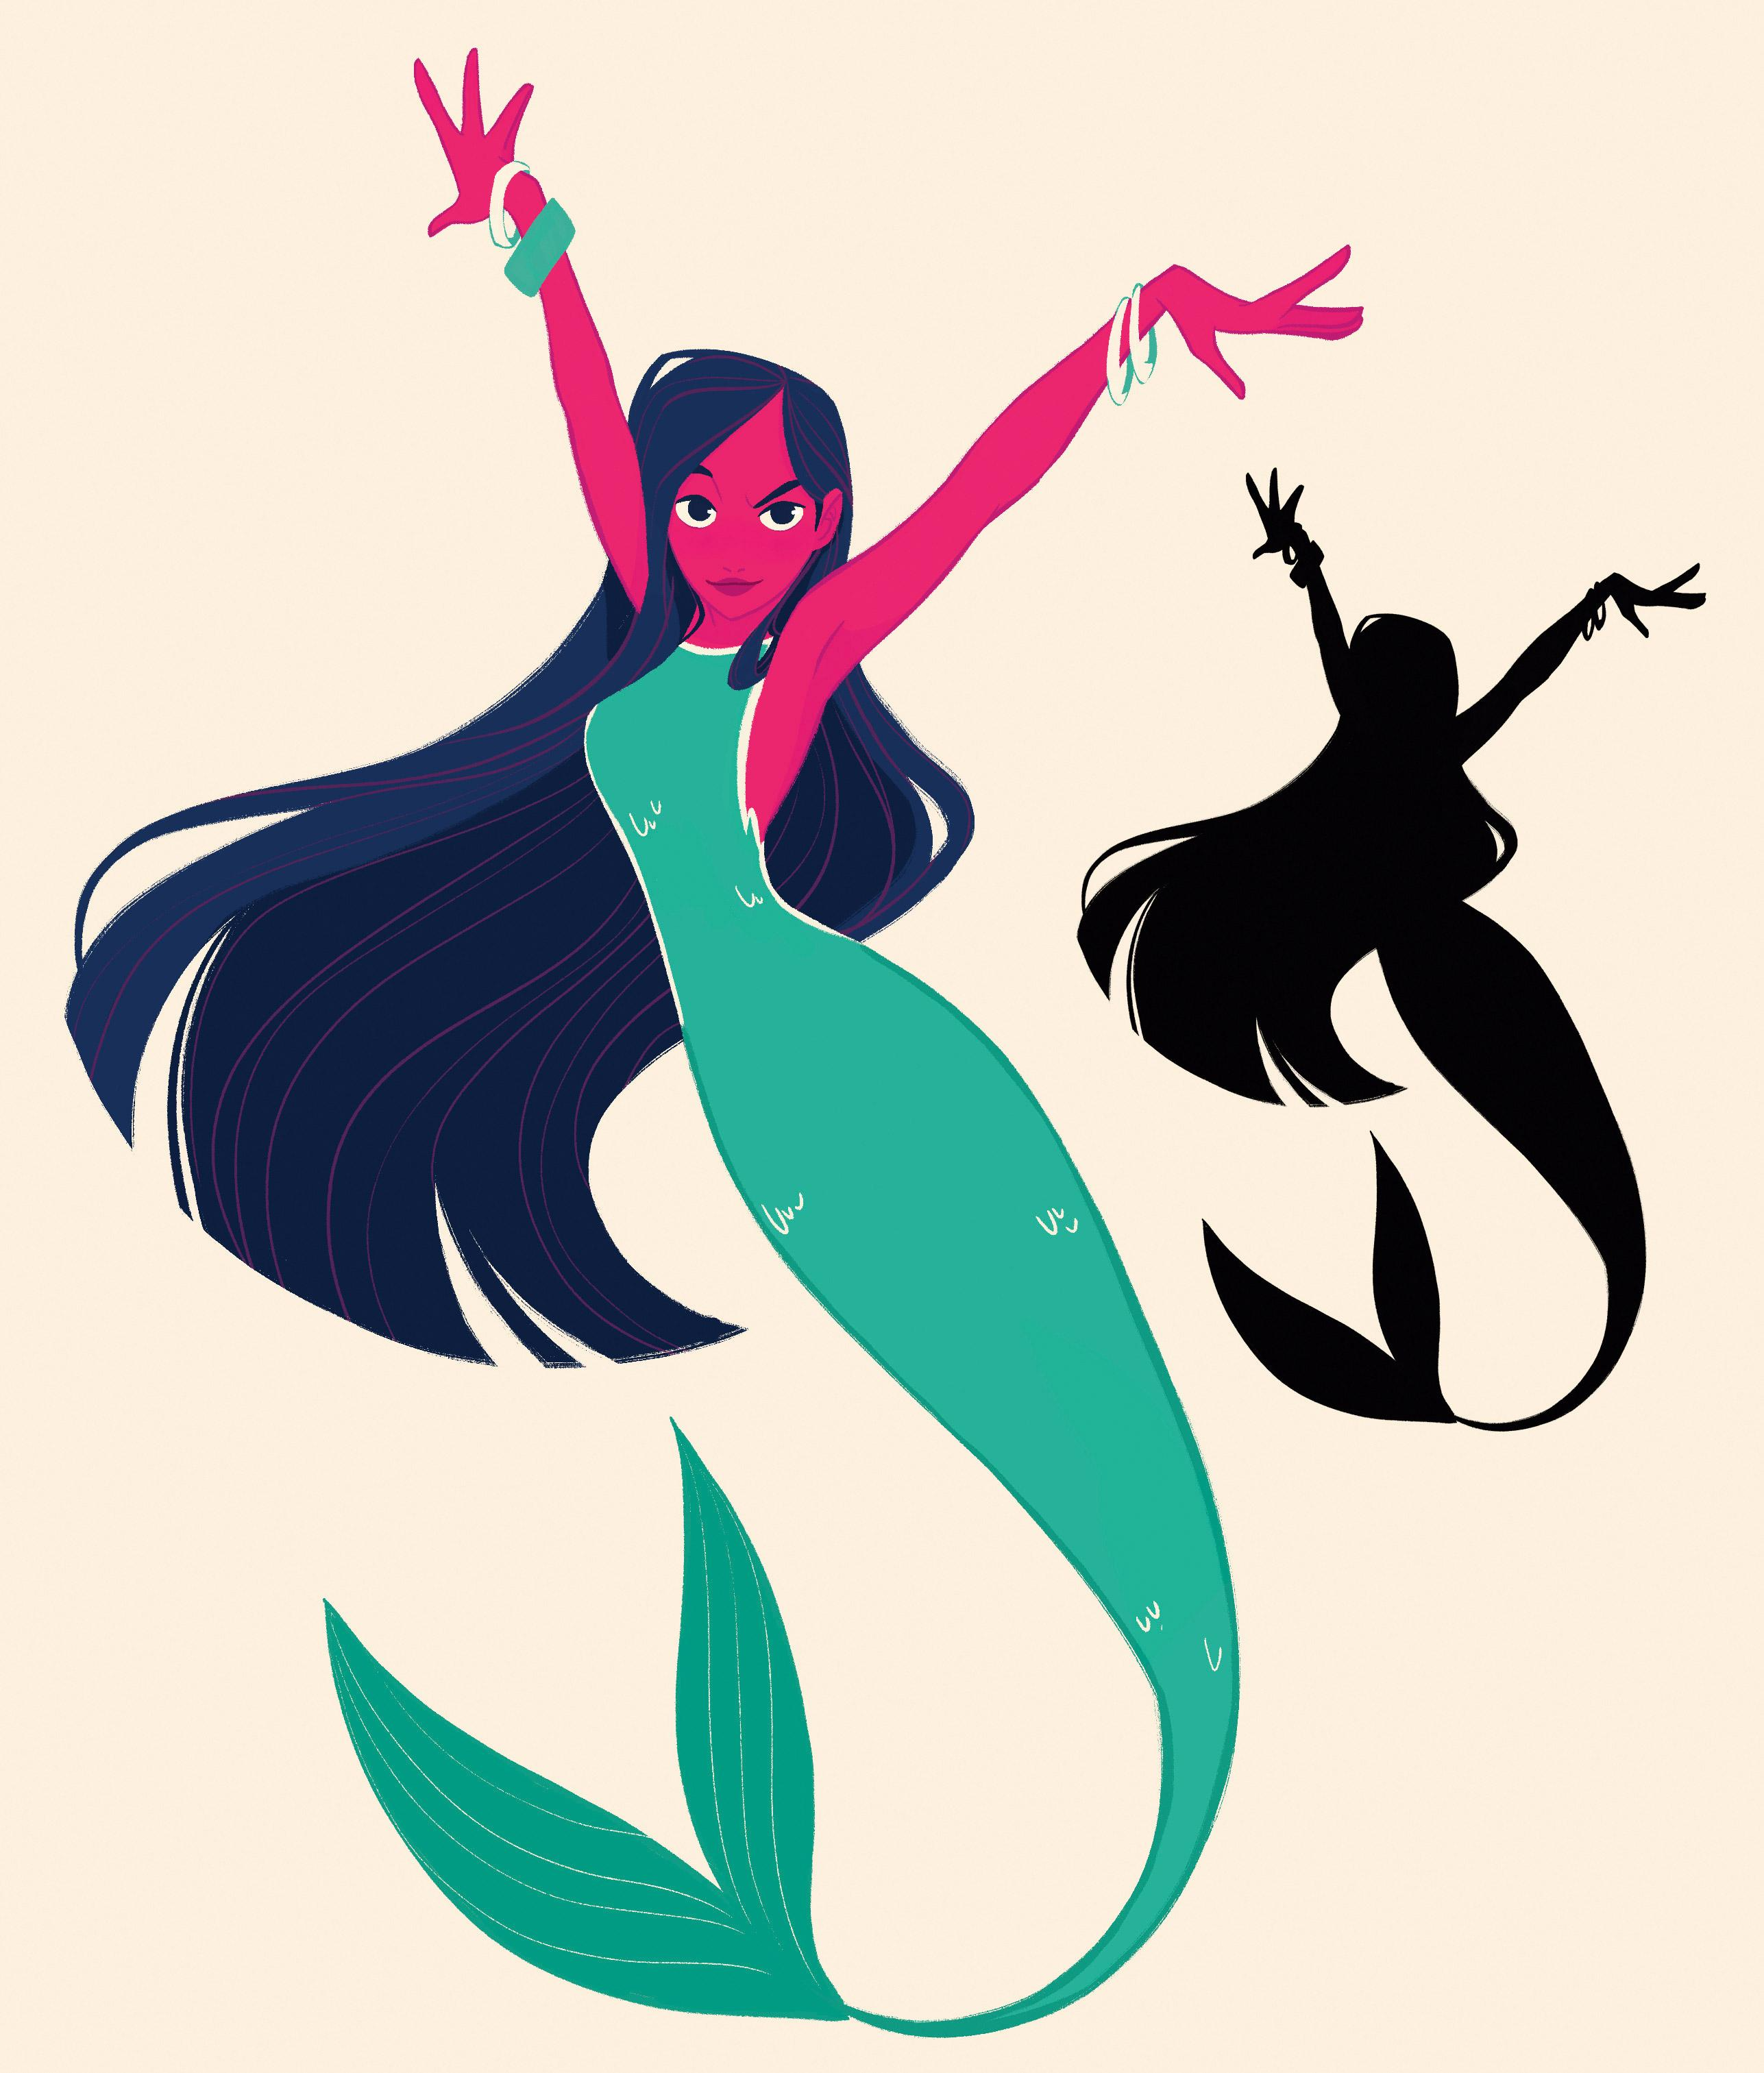 Gesticulating mermaid next to a silhouette version of the illustration